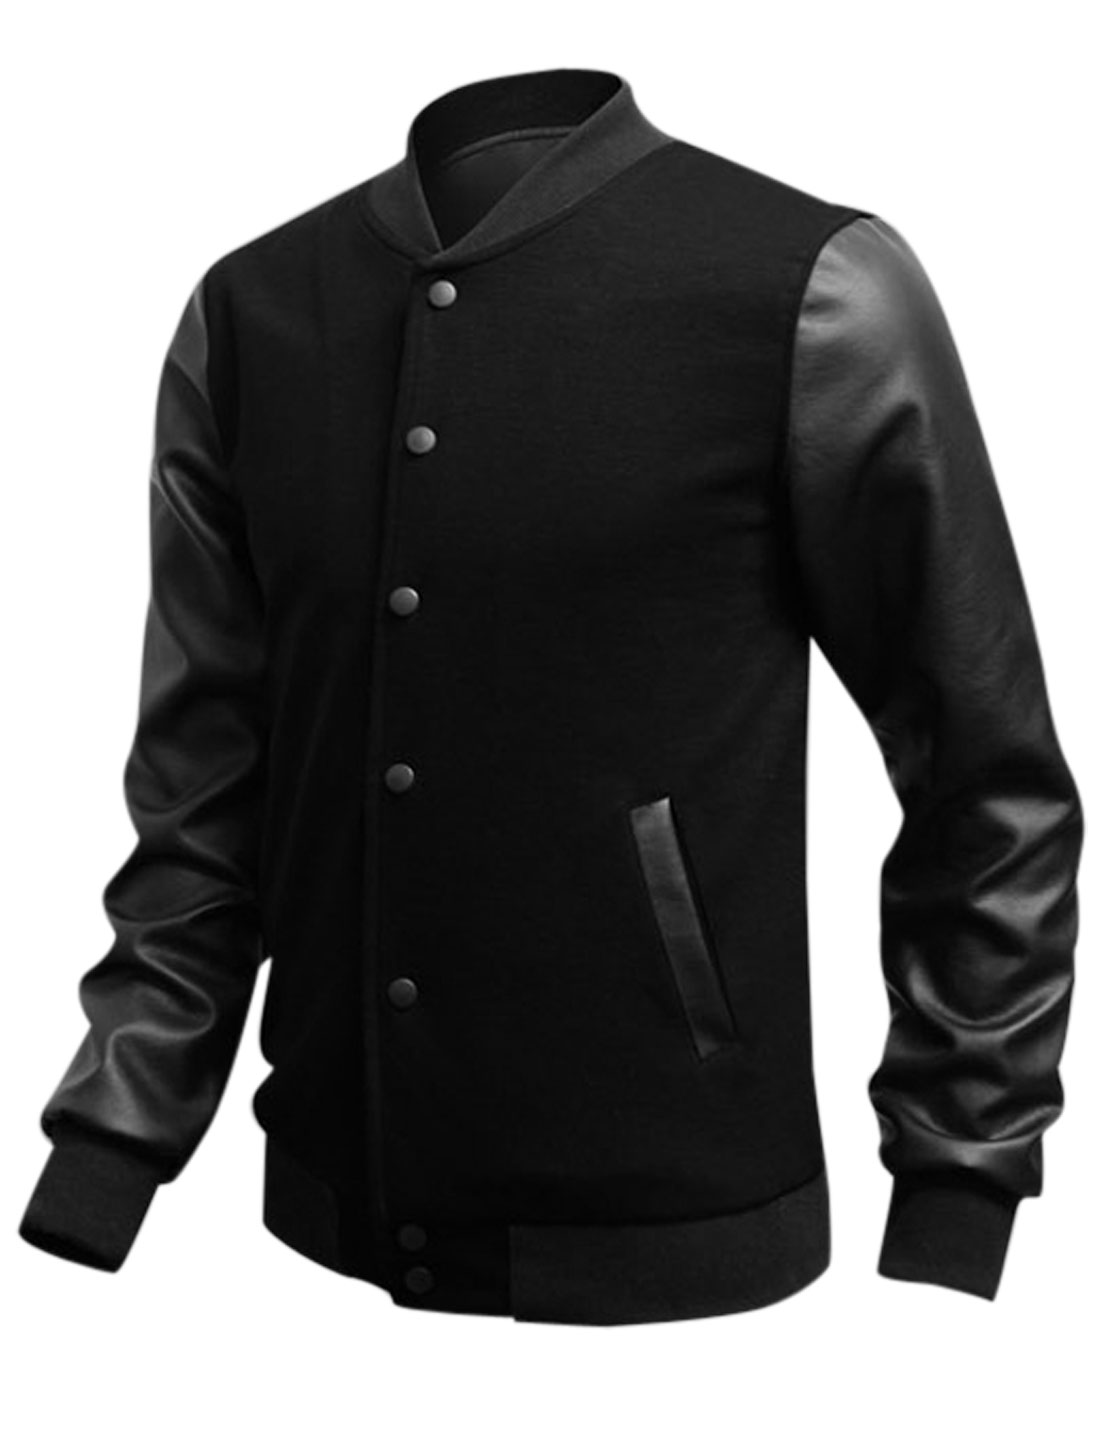 Man Ribbed Collar Cuffs Snap Button Closure Casual Jacket Black M